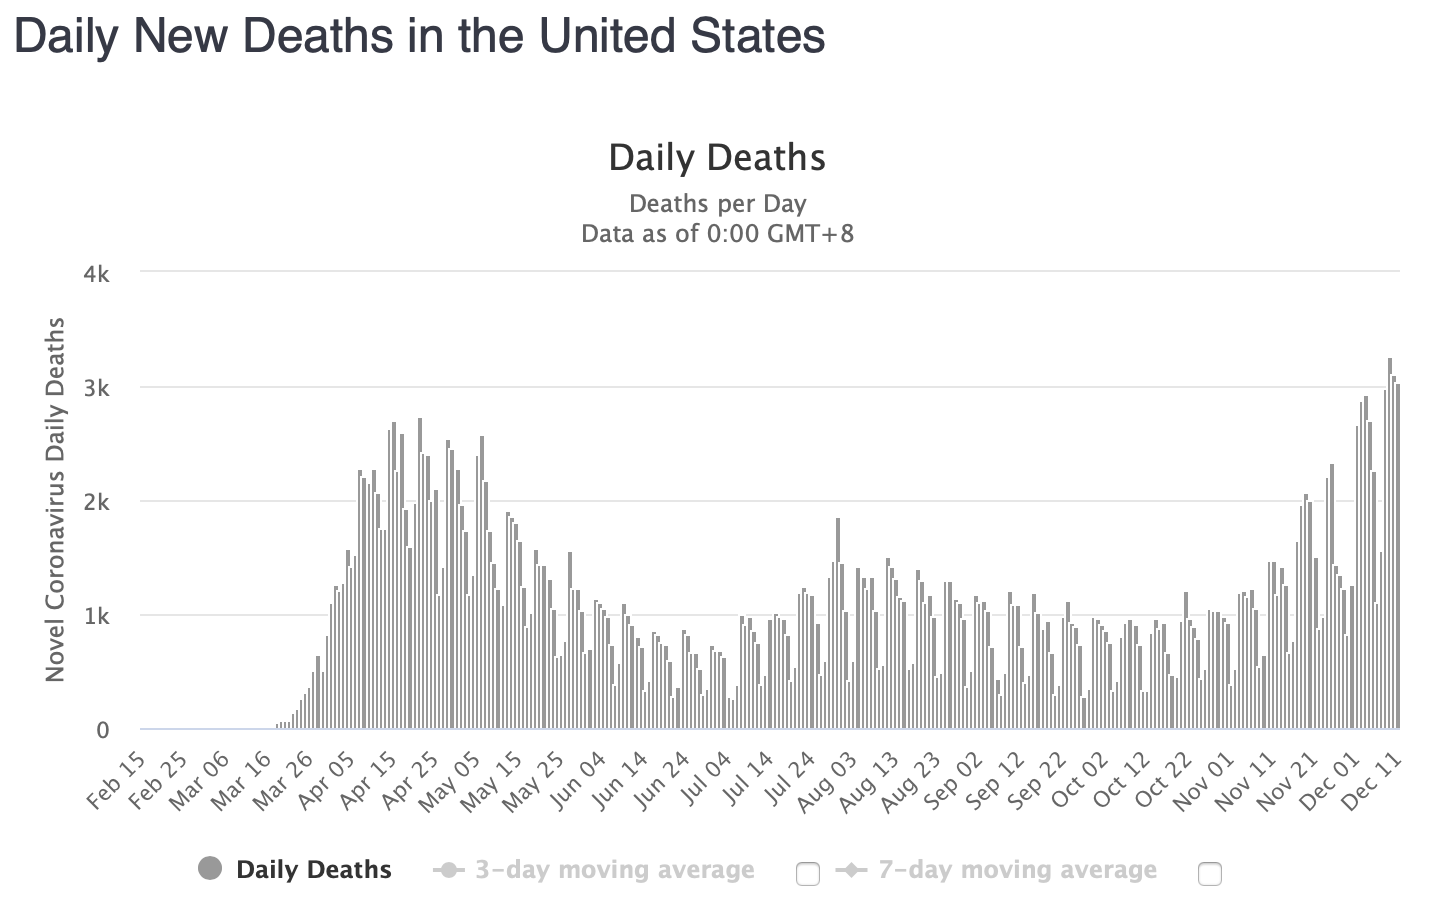 Worldometers Daily new deaths in the USA up to December 11th